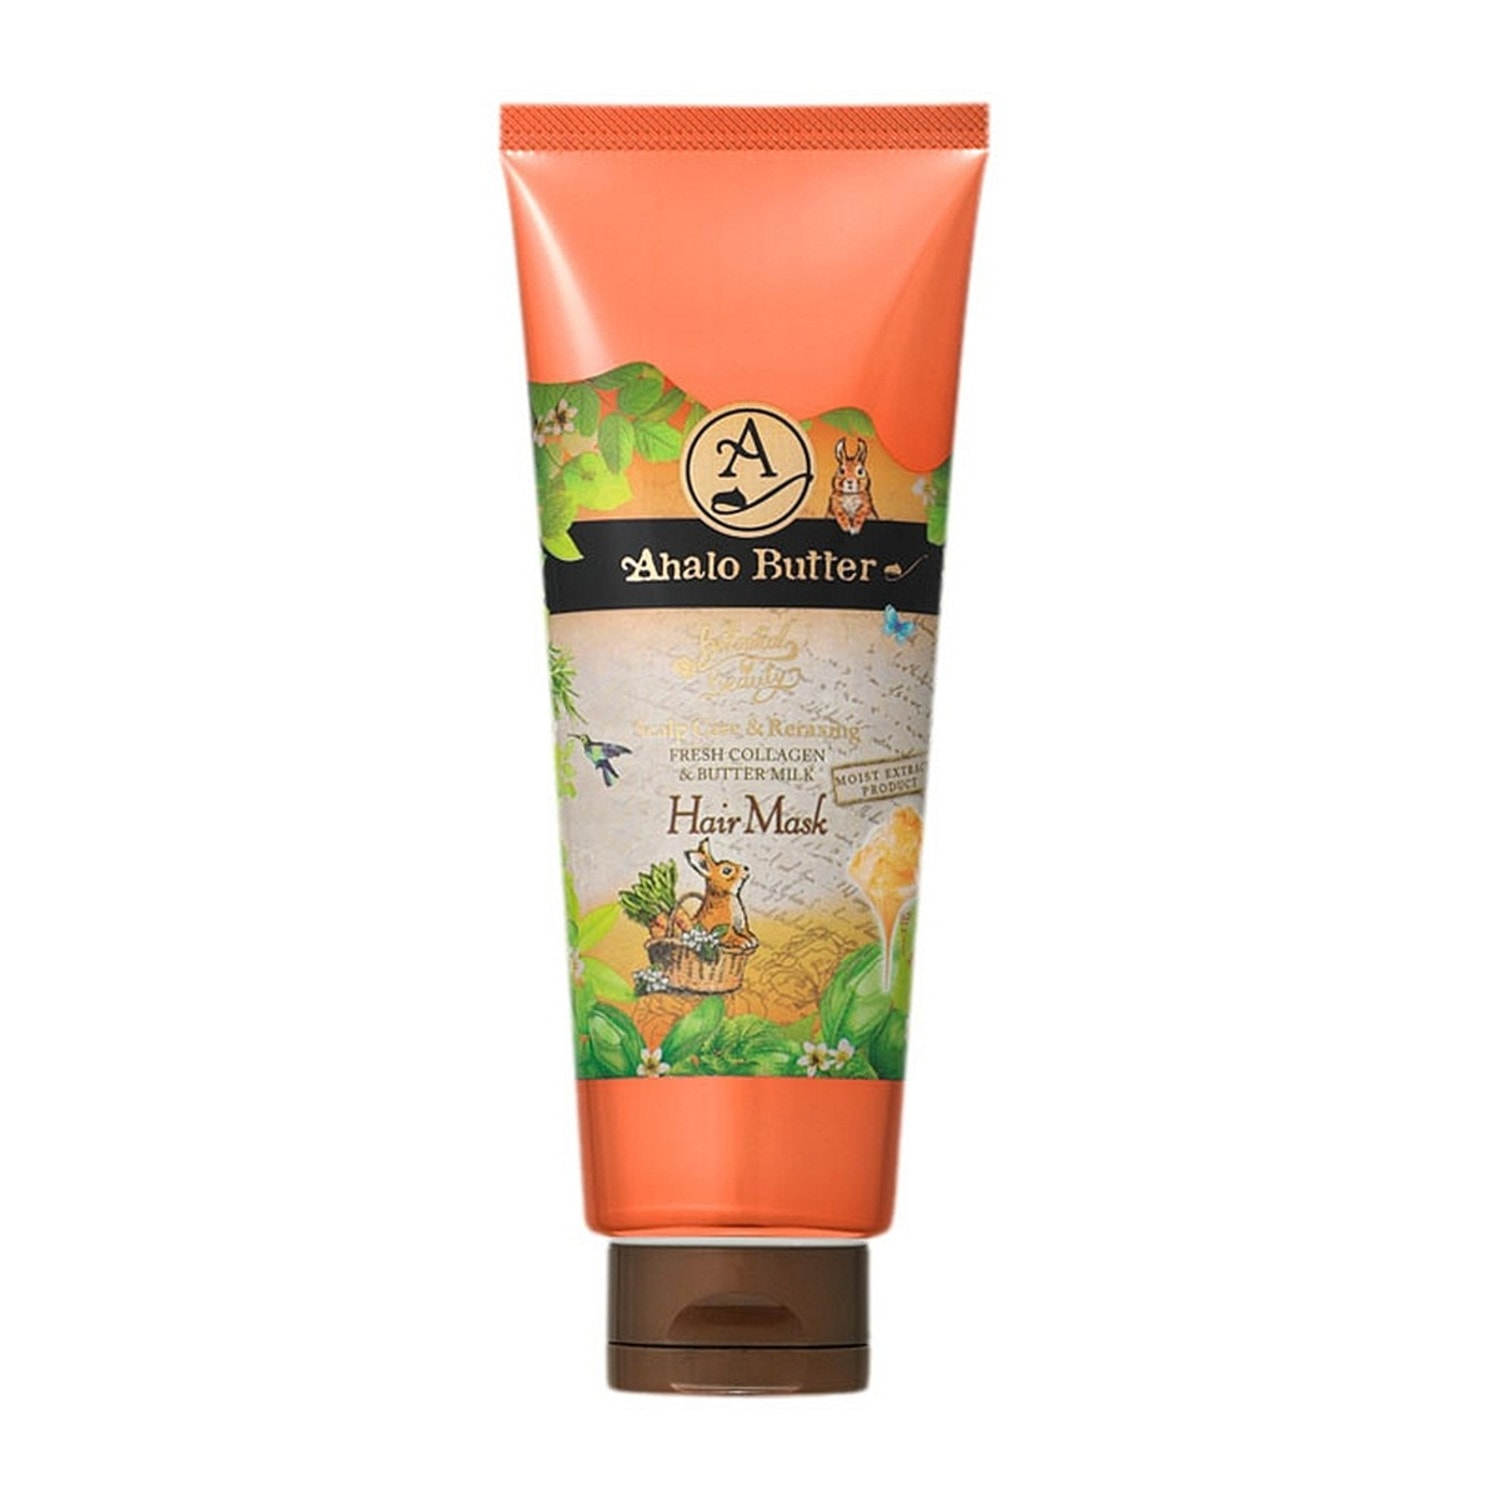 Ahalo Butter Hair Mask Premium Sculp Маска восстанавливающая на растительной основе  (без сульфатов),220 г/  560035